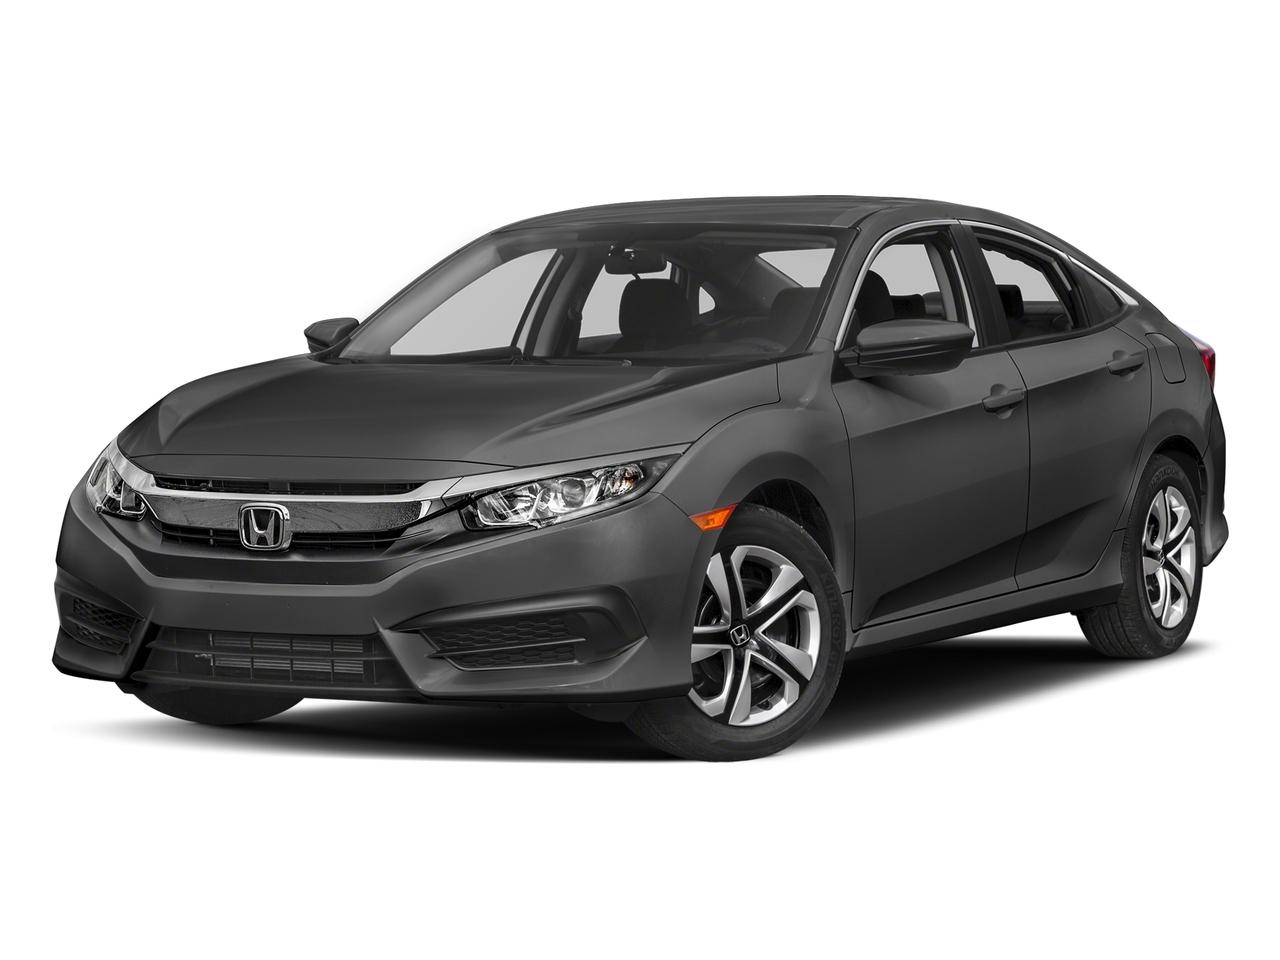 2017 Honda Civic Sedan Vehicle Photo in Owensboro, KY 42303